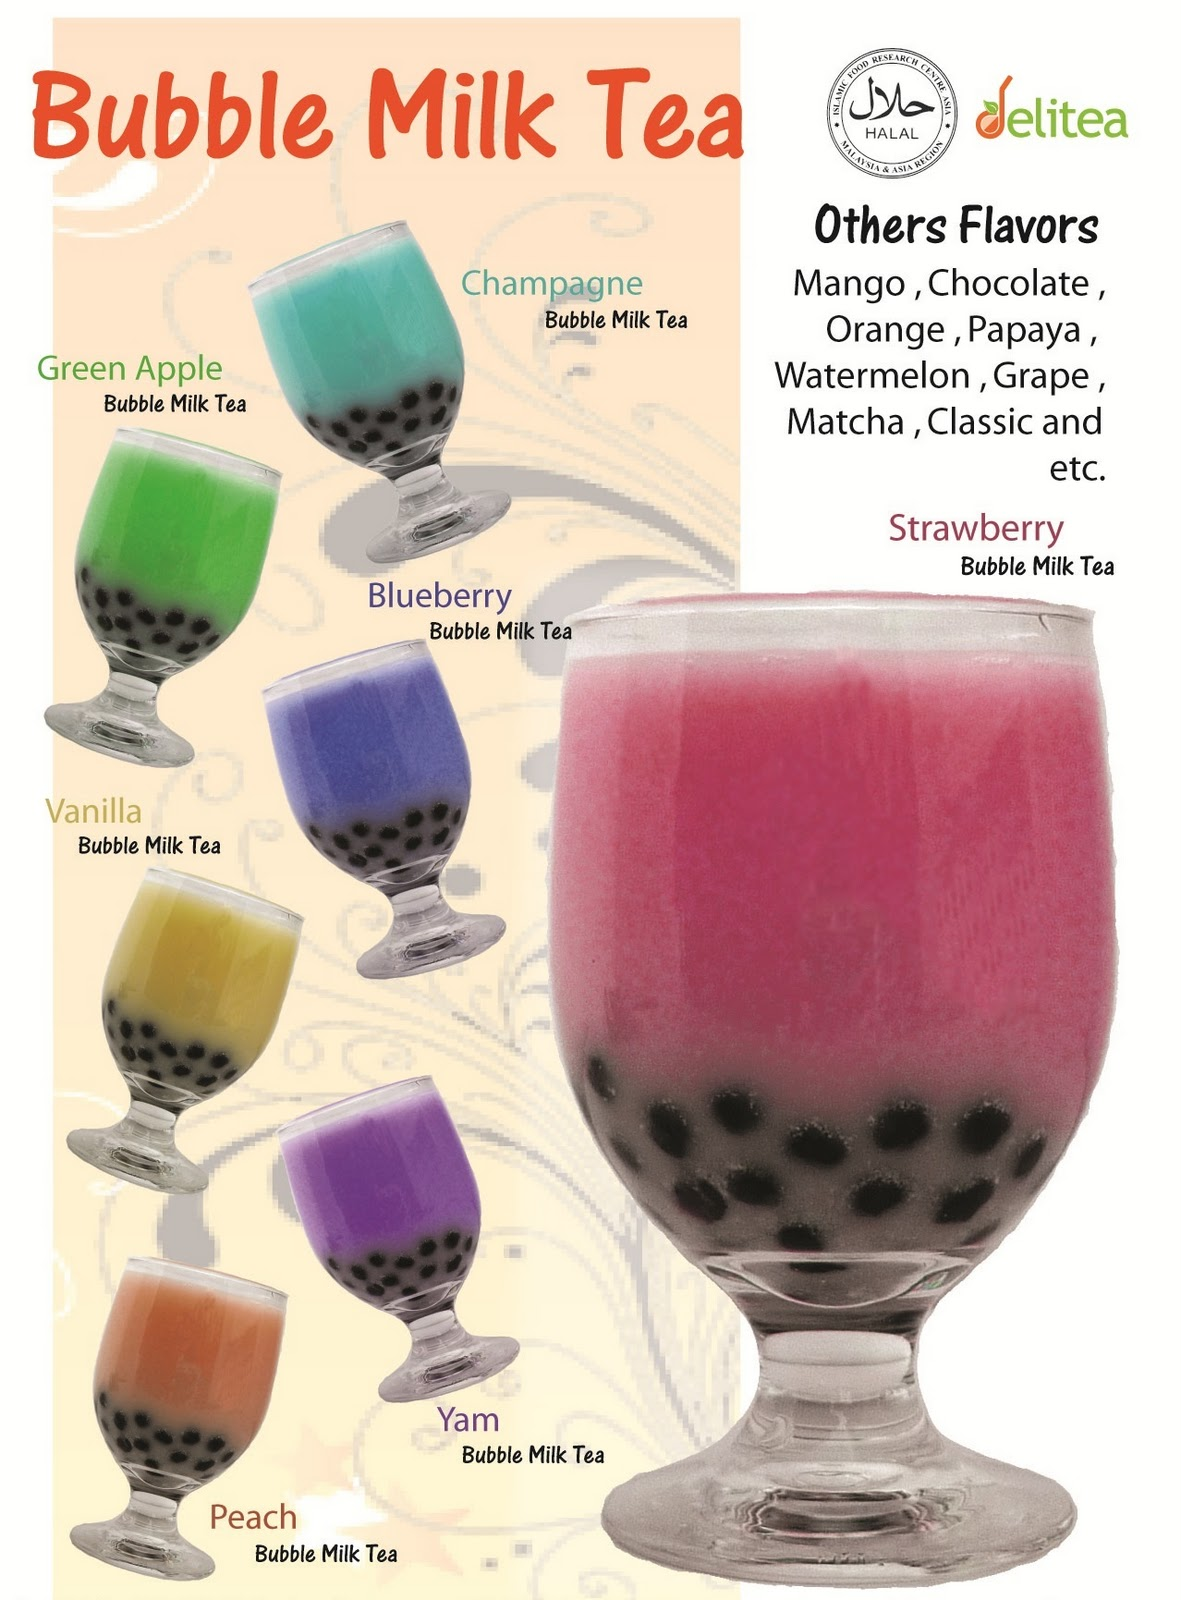 JellyTea Enterprise: Bubble Milk Tea